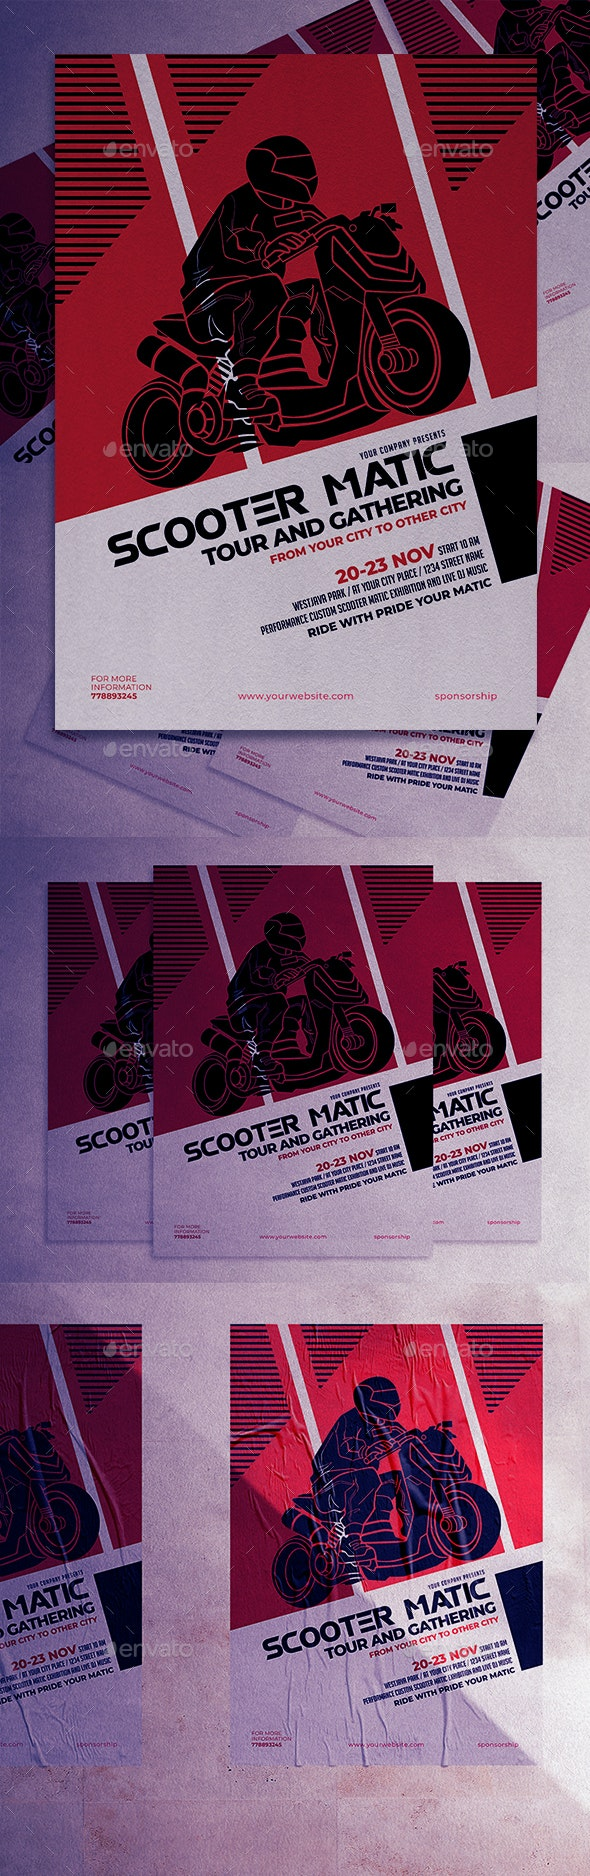 Scooter Matic Tour and Gathering Flyer - Clubs & Parties Events